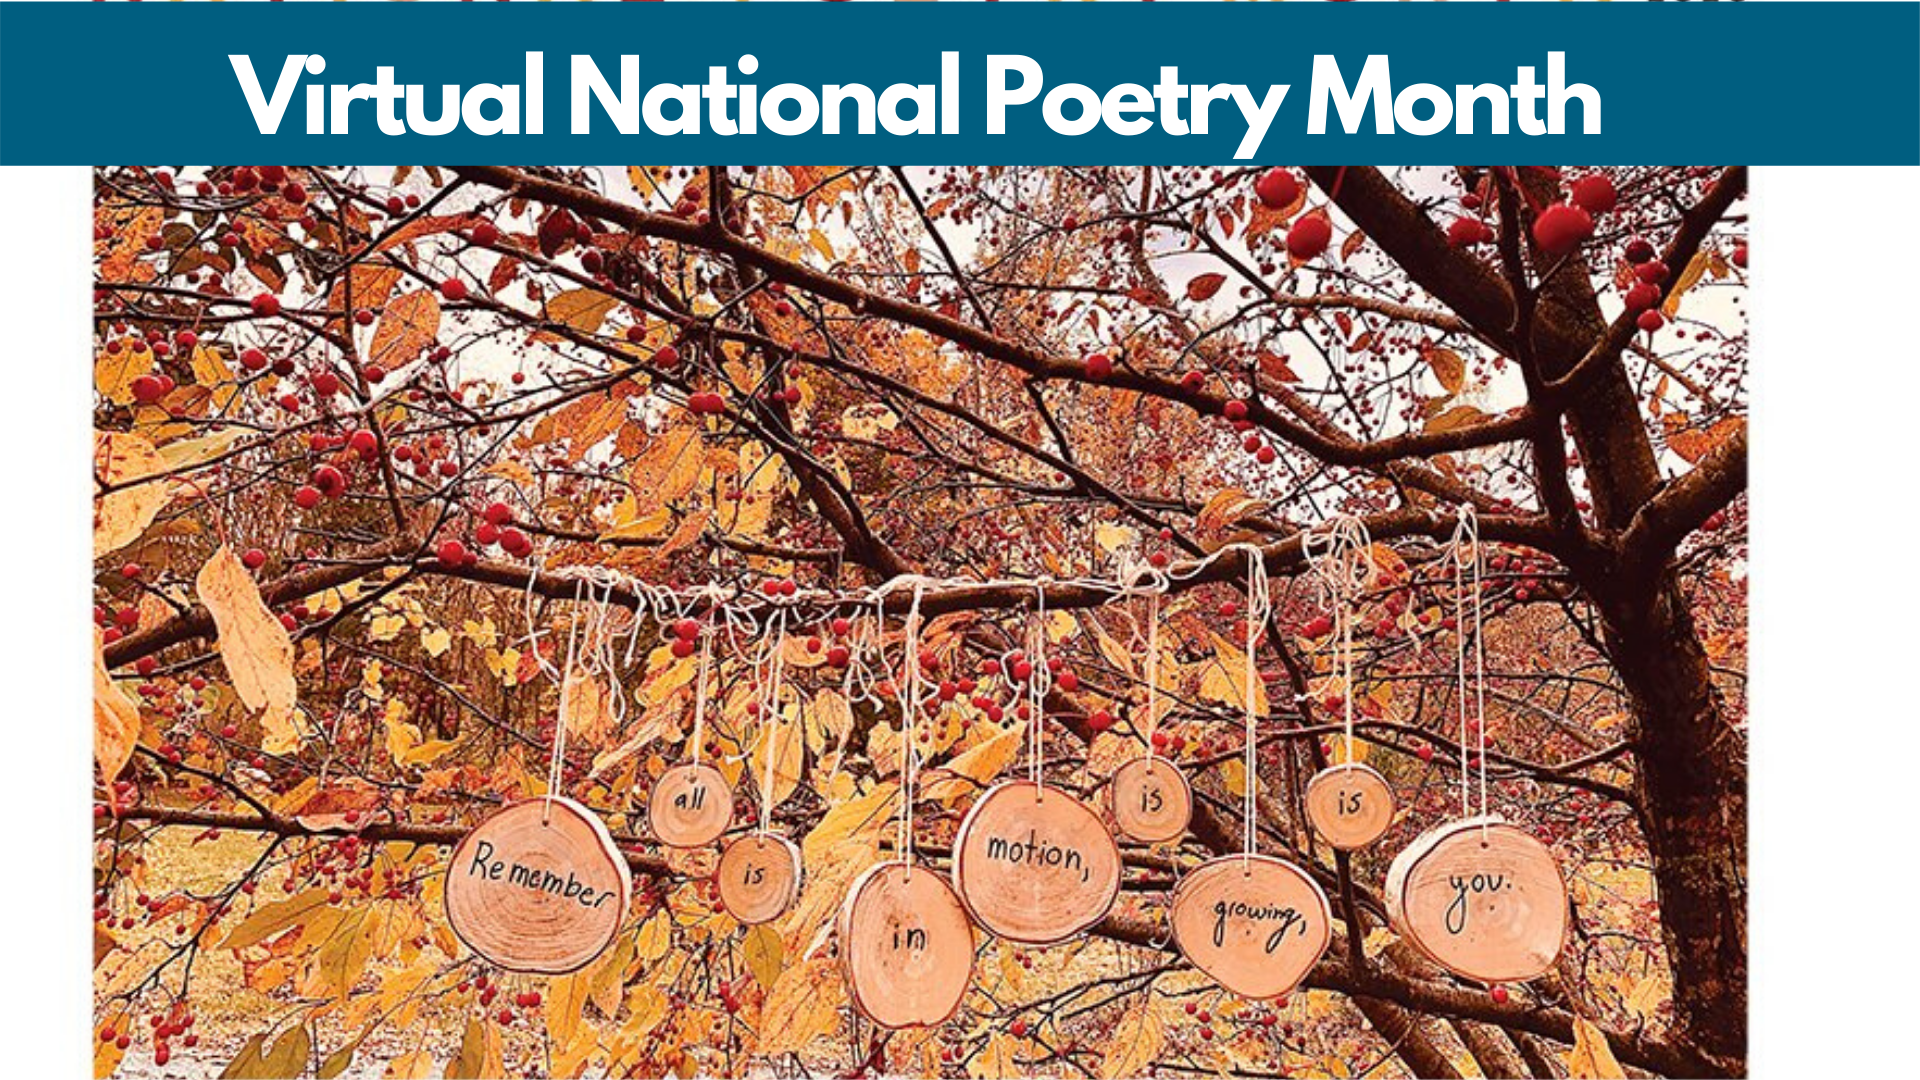 Virtual National Poetry Month